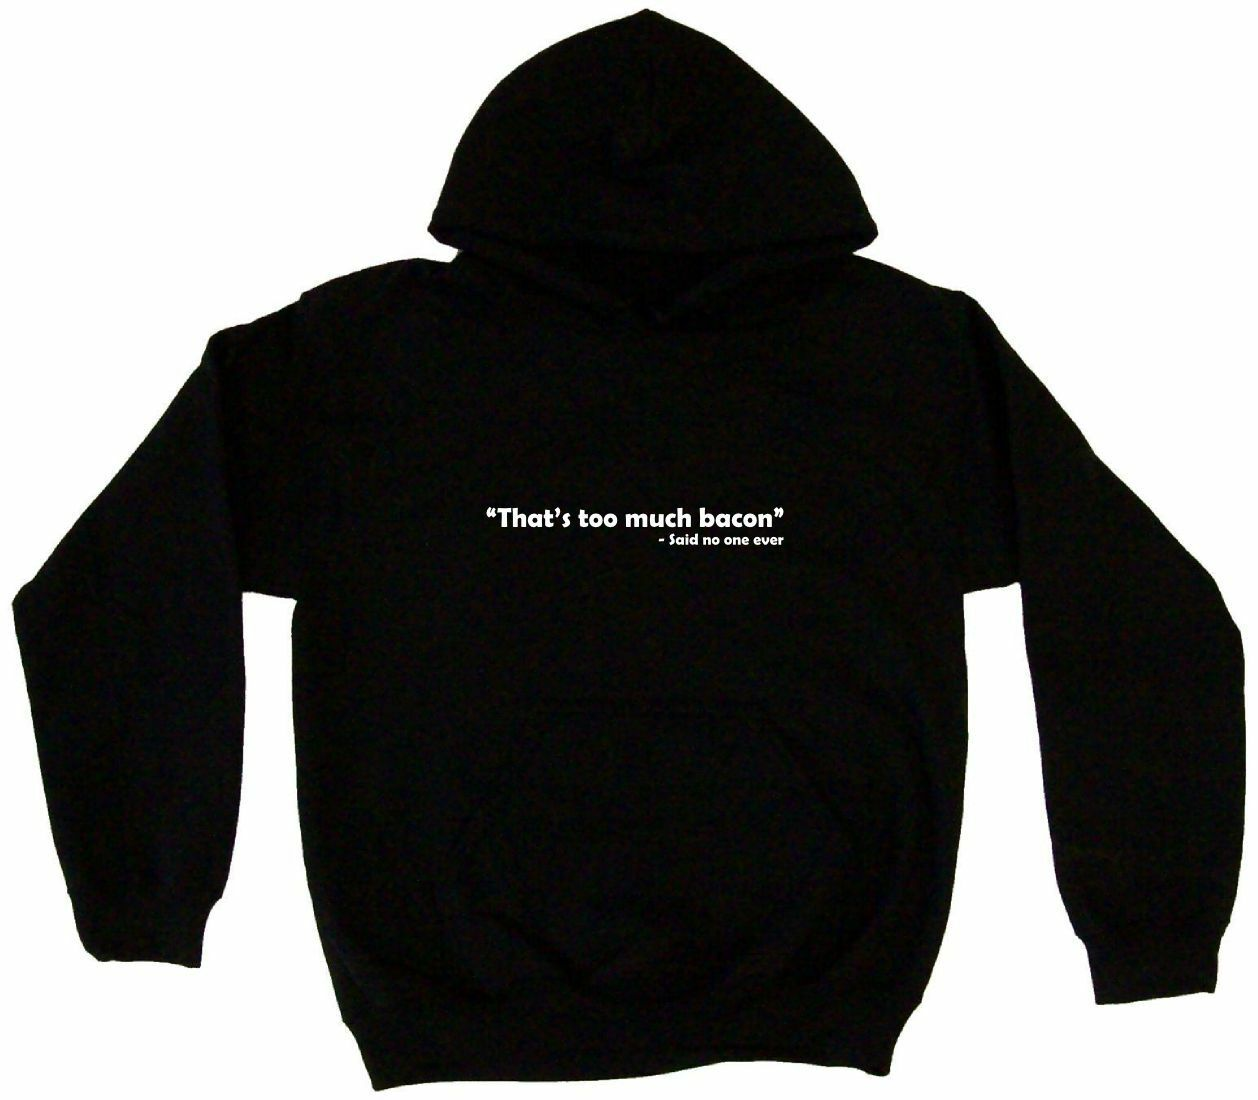 That's Too Much Bacon - Said No One Ever Hoodie Sweatshirt